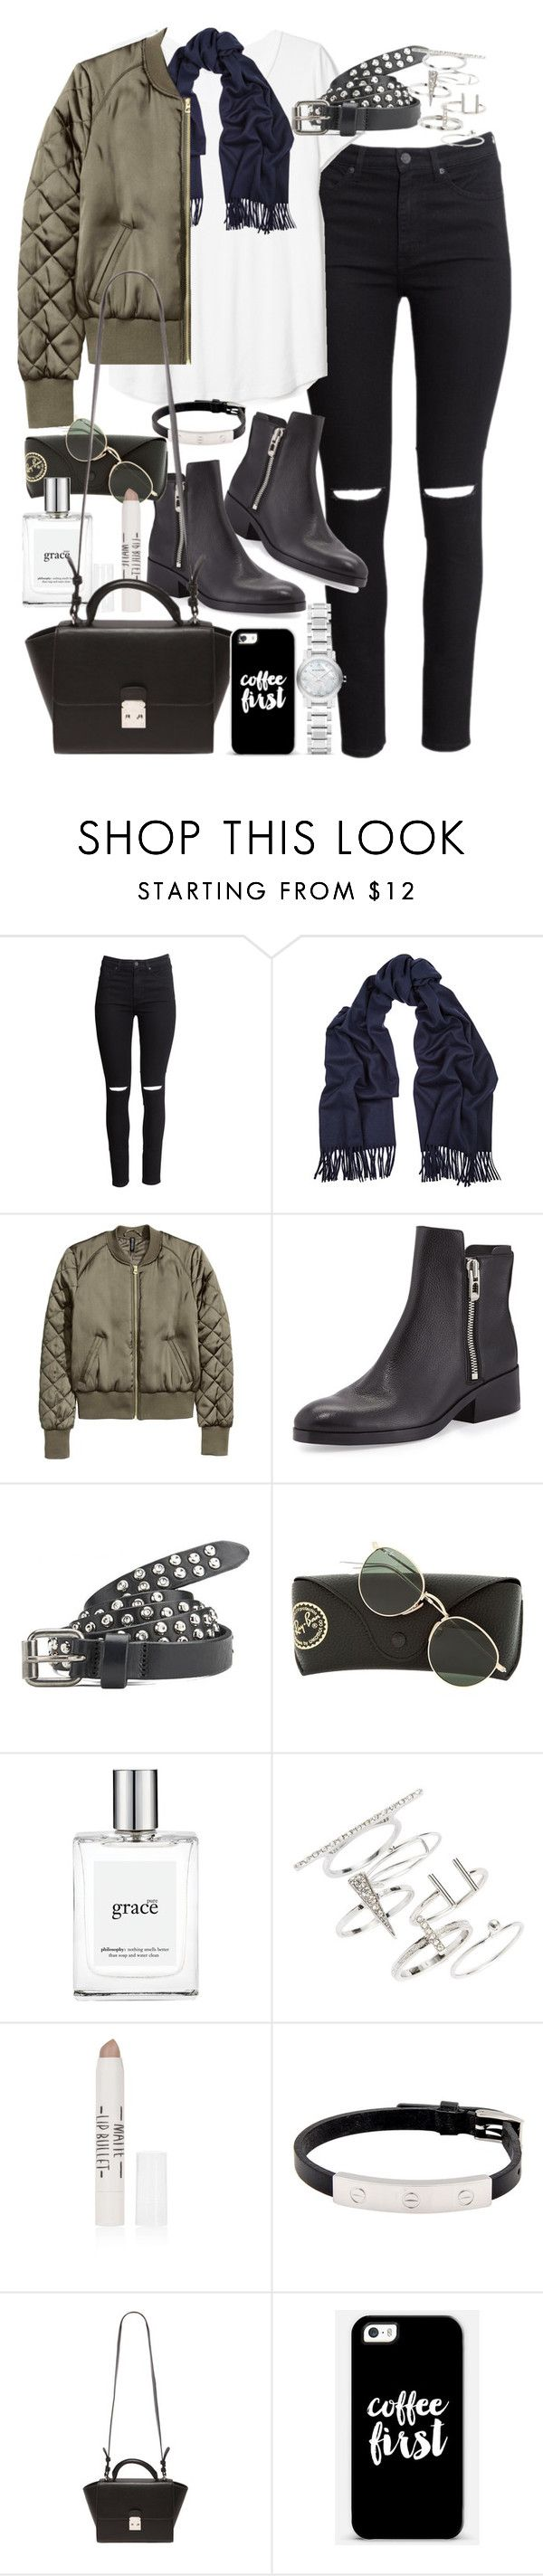 """Outfit with black ripped jeans and khaki bomber jacket"" by ferned ❤ liked on Polyvore featuring H&M, Acne Studios, 3.1 Phillip Lim, Maison Scotch, Ray-Ban, philosophy, Topshop, Cartier, Forever 21 and Casetify"